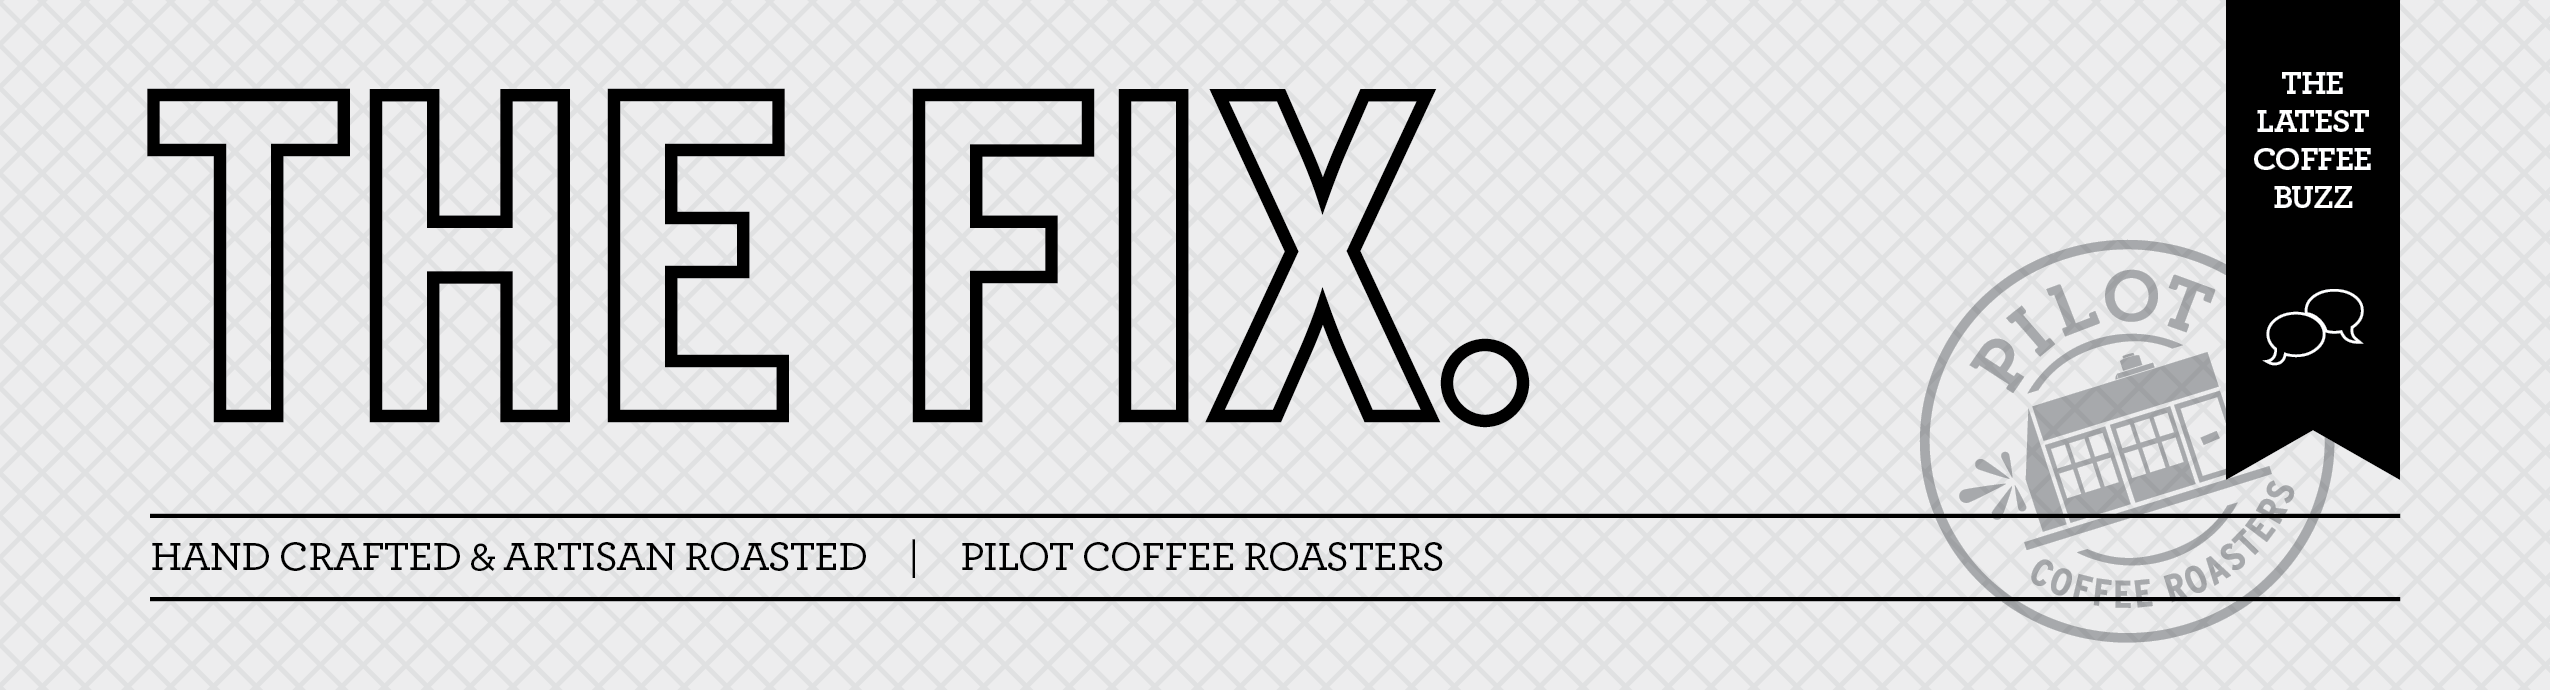 The Fix. The Aeropress.